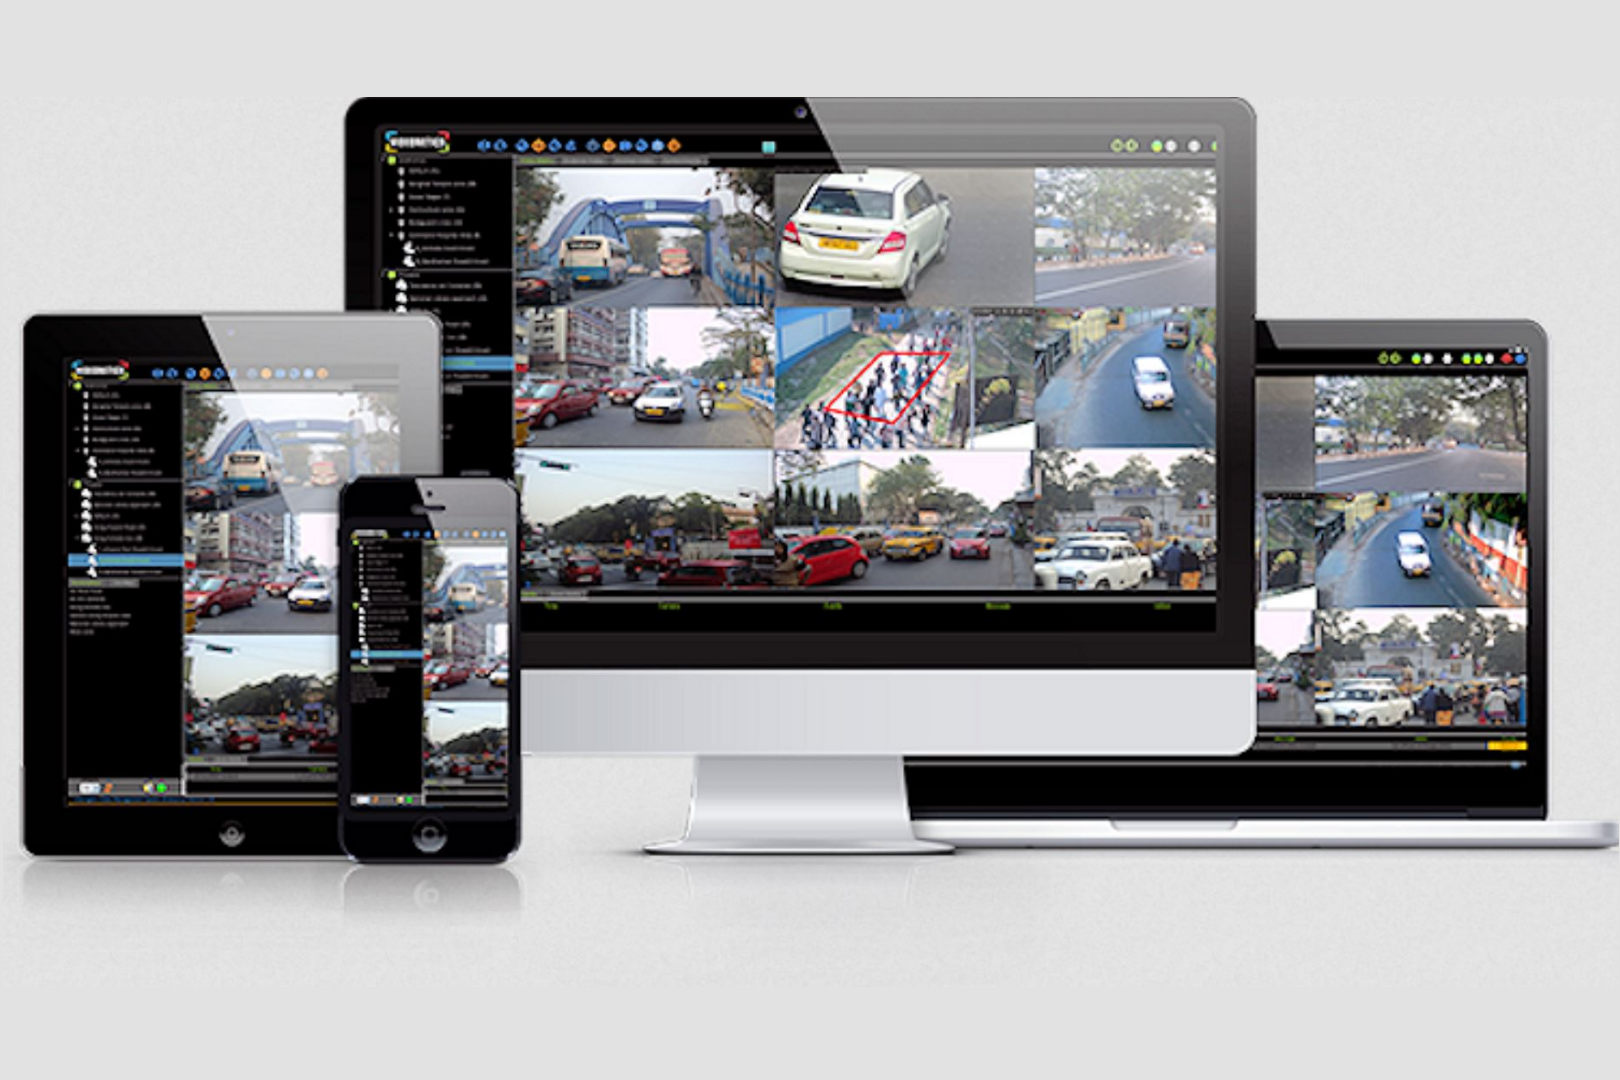 microngroup axis cctv software with iphone ipad tablet app